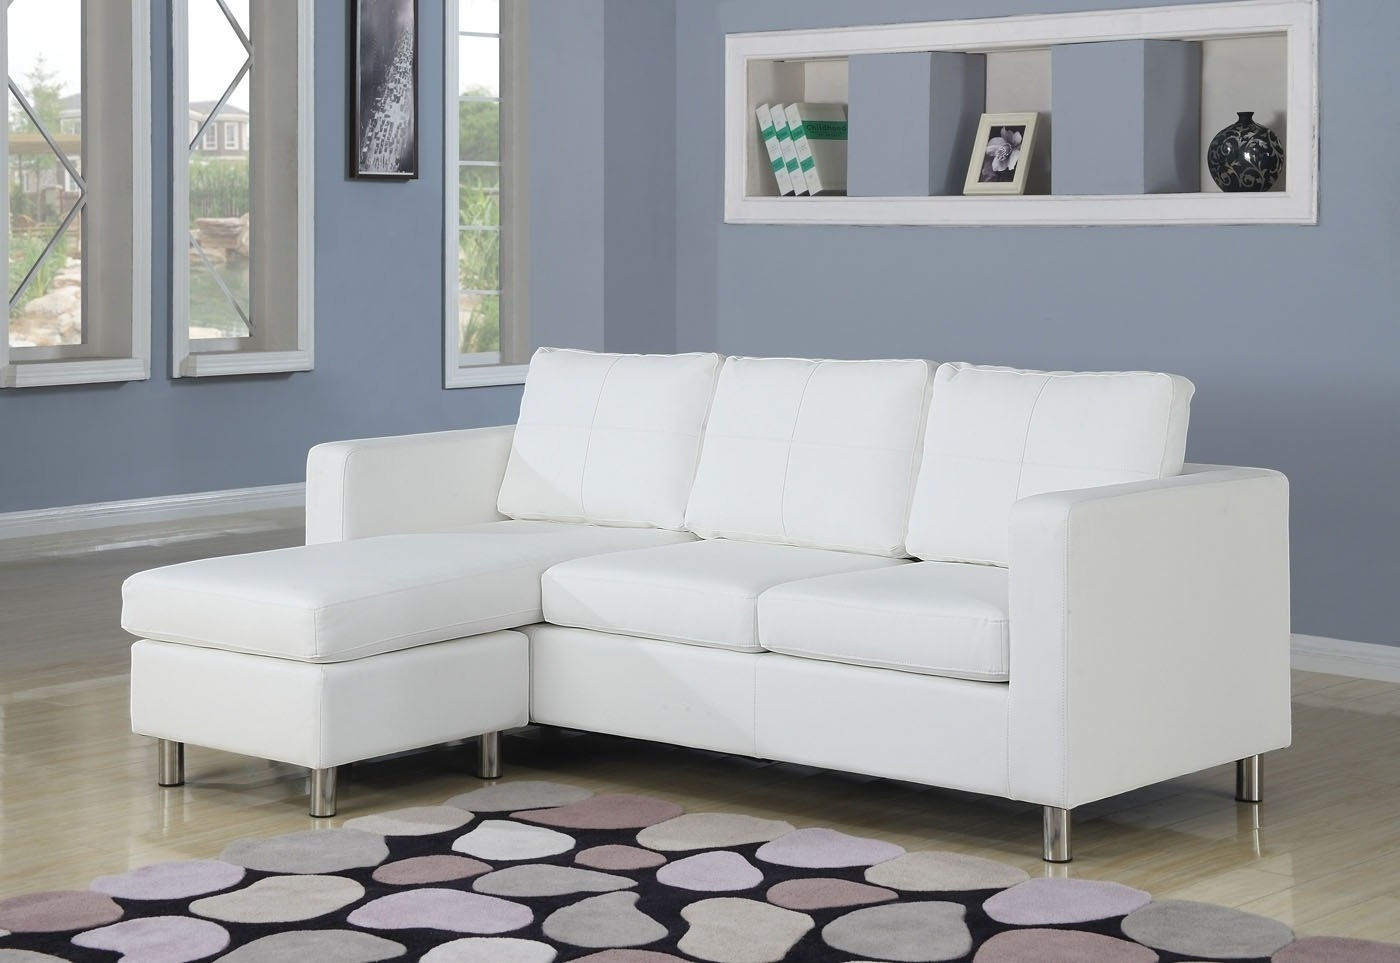 2018 L White Leather Sectional Sofa With Chaise And Back Also Arms On Pertaining To White Leather Sectionals With Chaise (View 2 of 15)